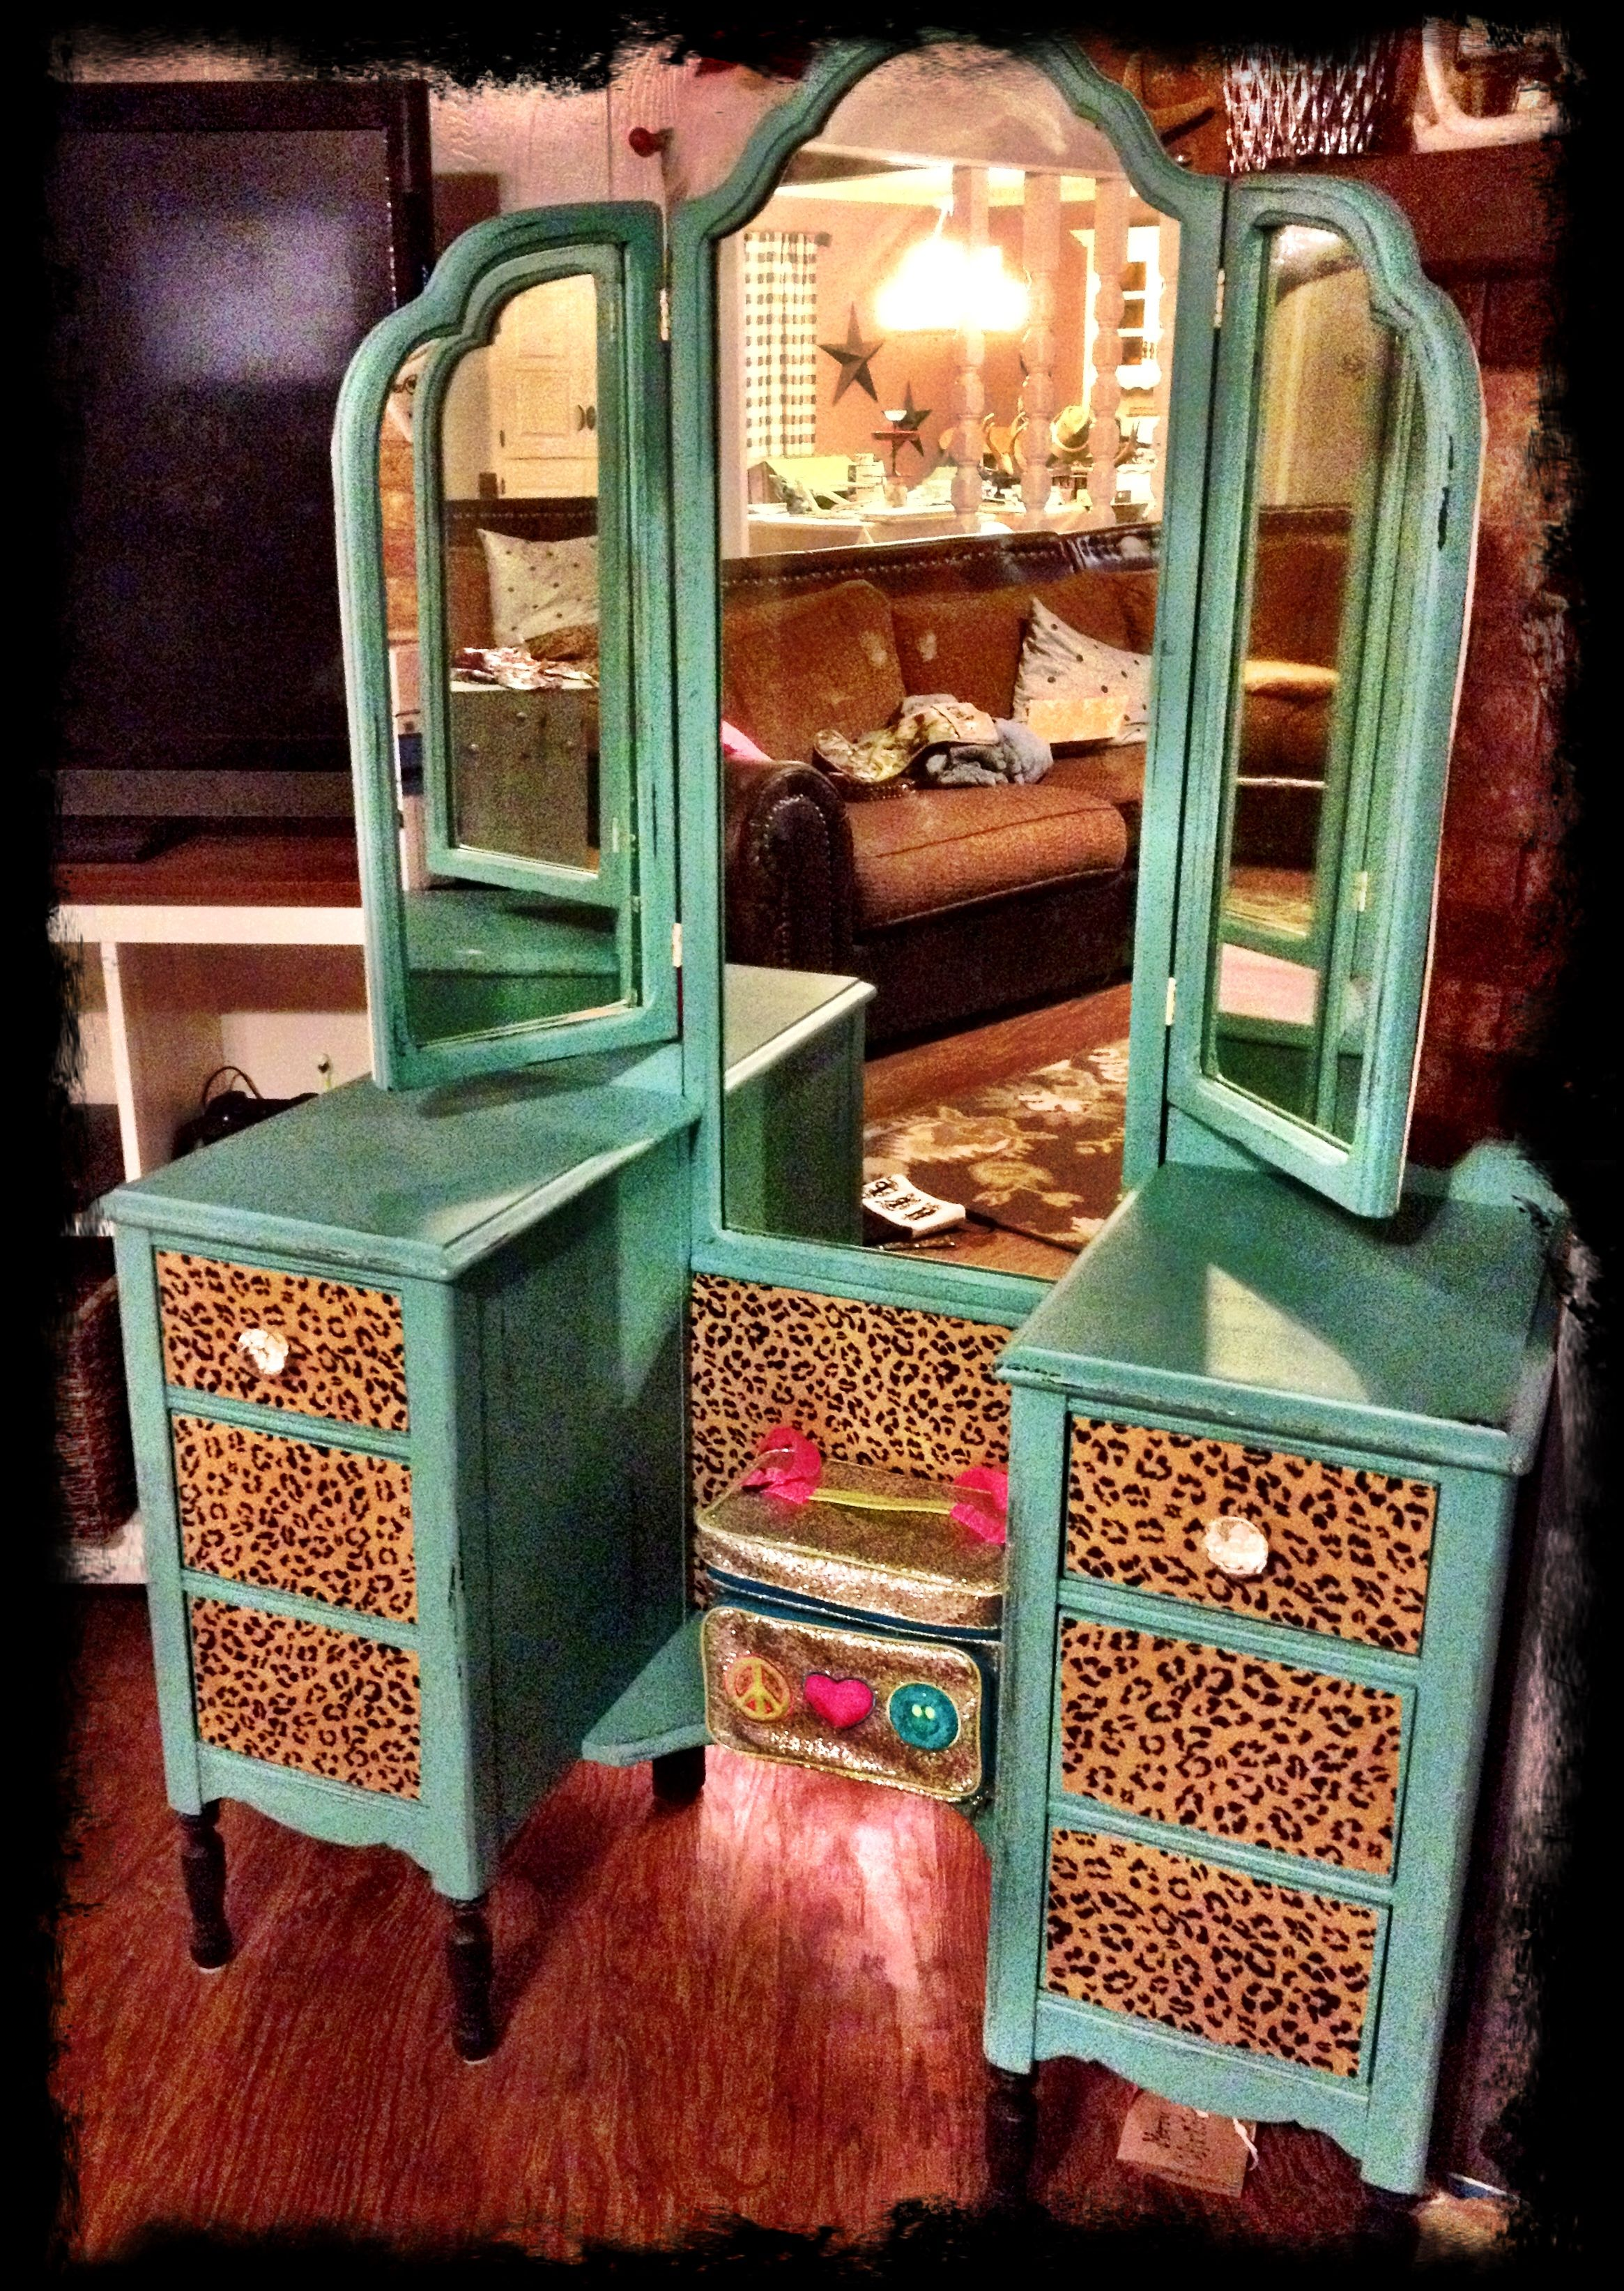 c6a0f5c4ad My two favorite things...turquoise and leopard print!!! I have a vintage  vanity I m about to redo